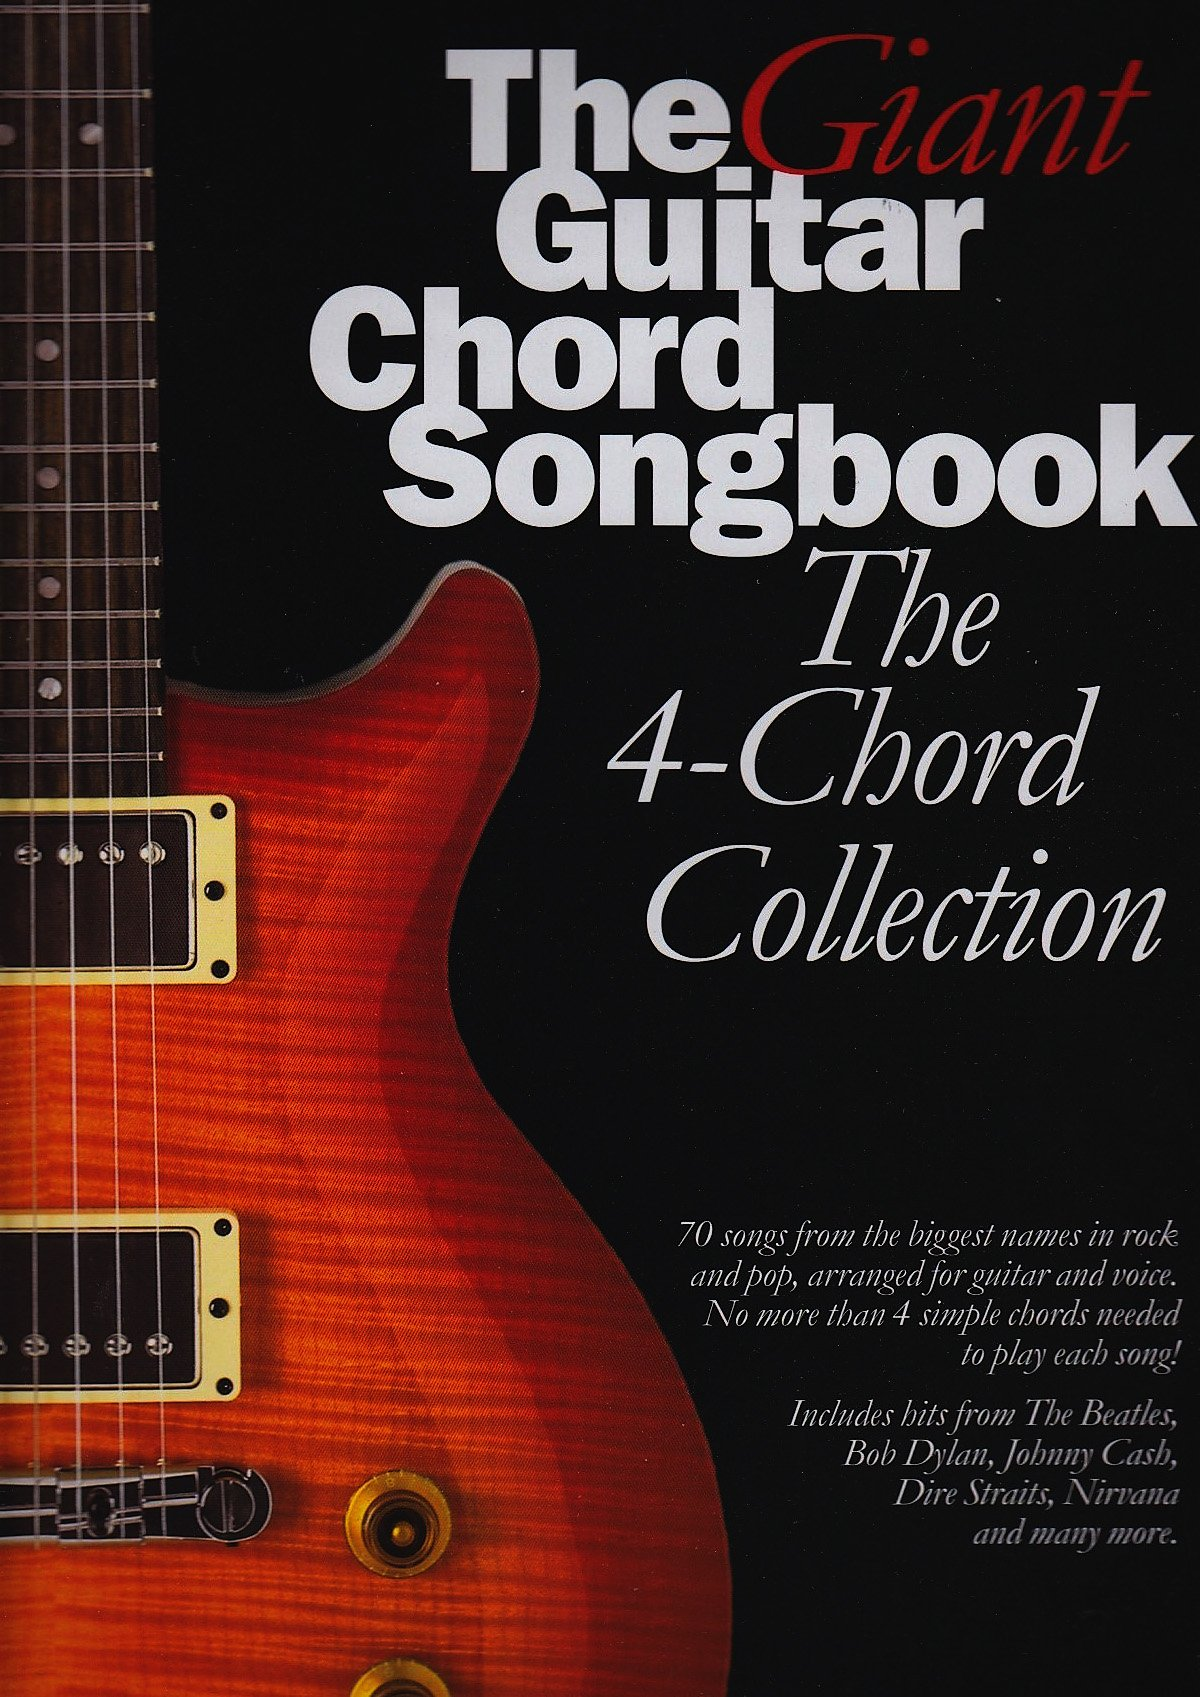 The Giant Guitar Chord Songbook The 4 Chord Collection